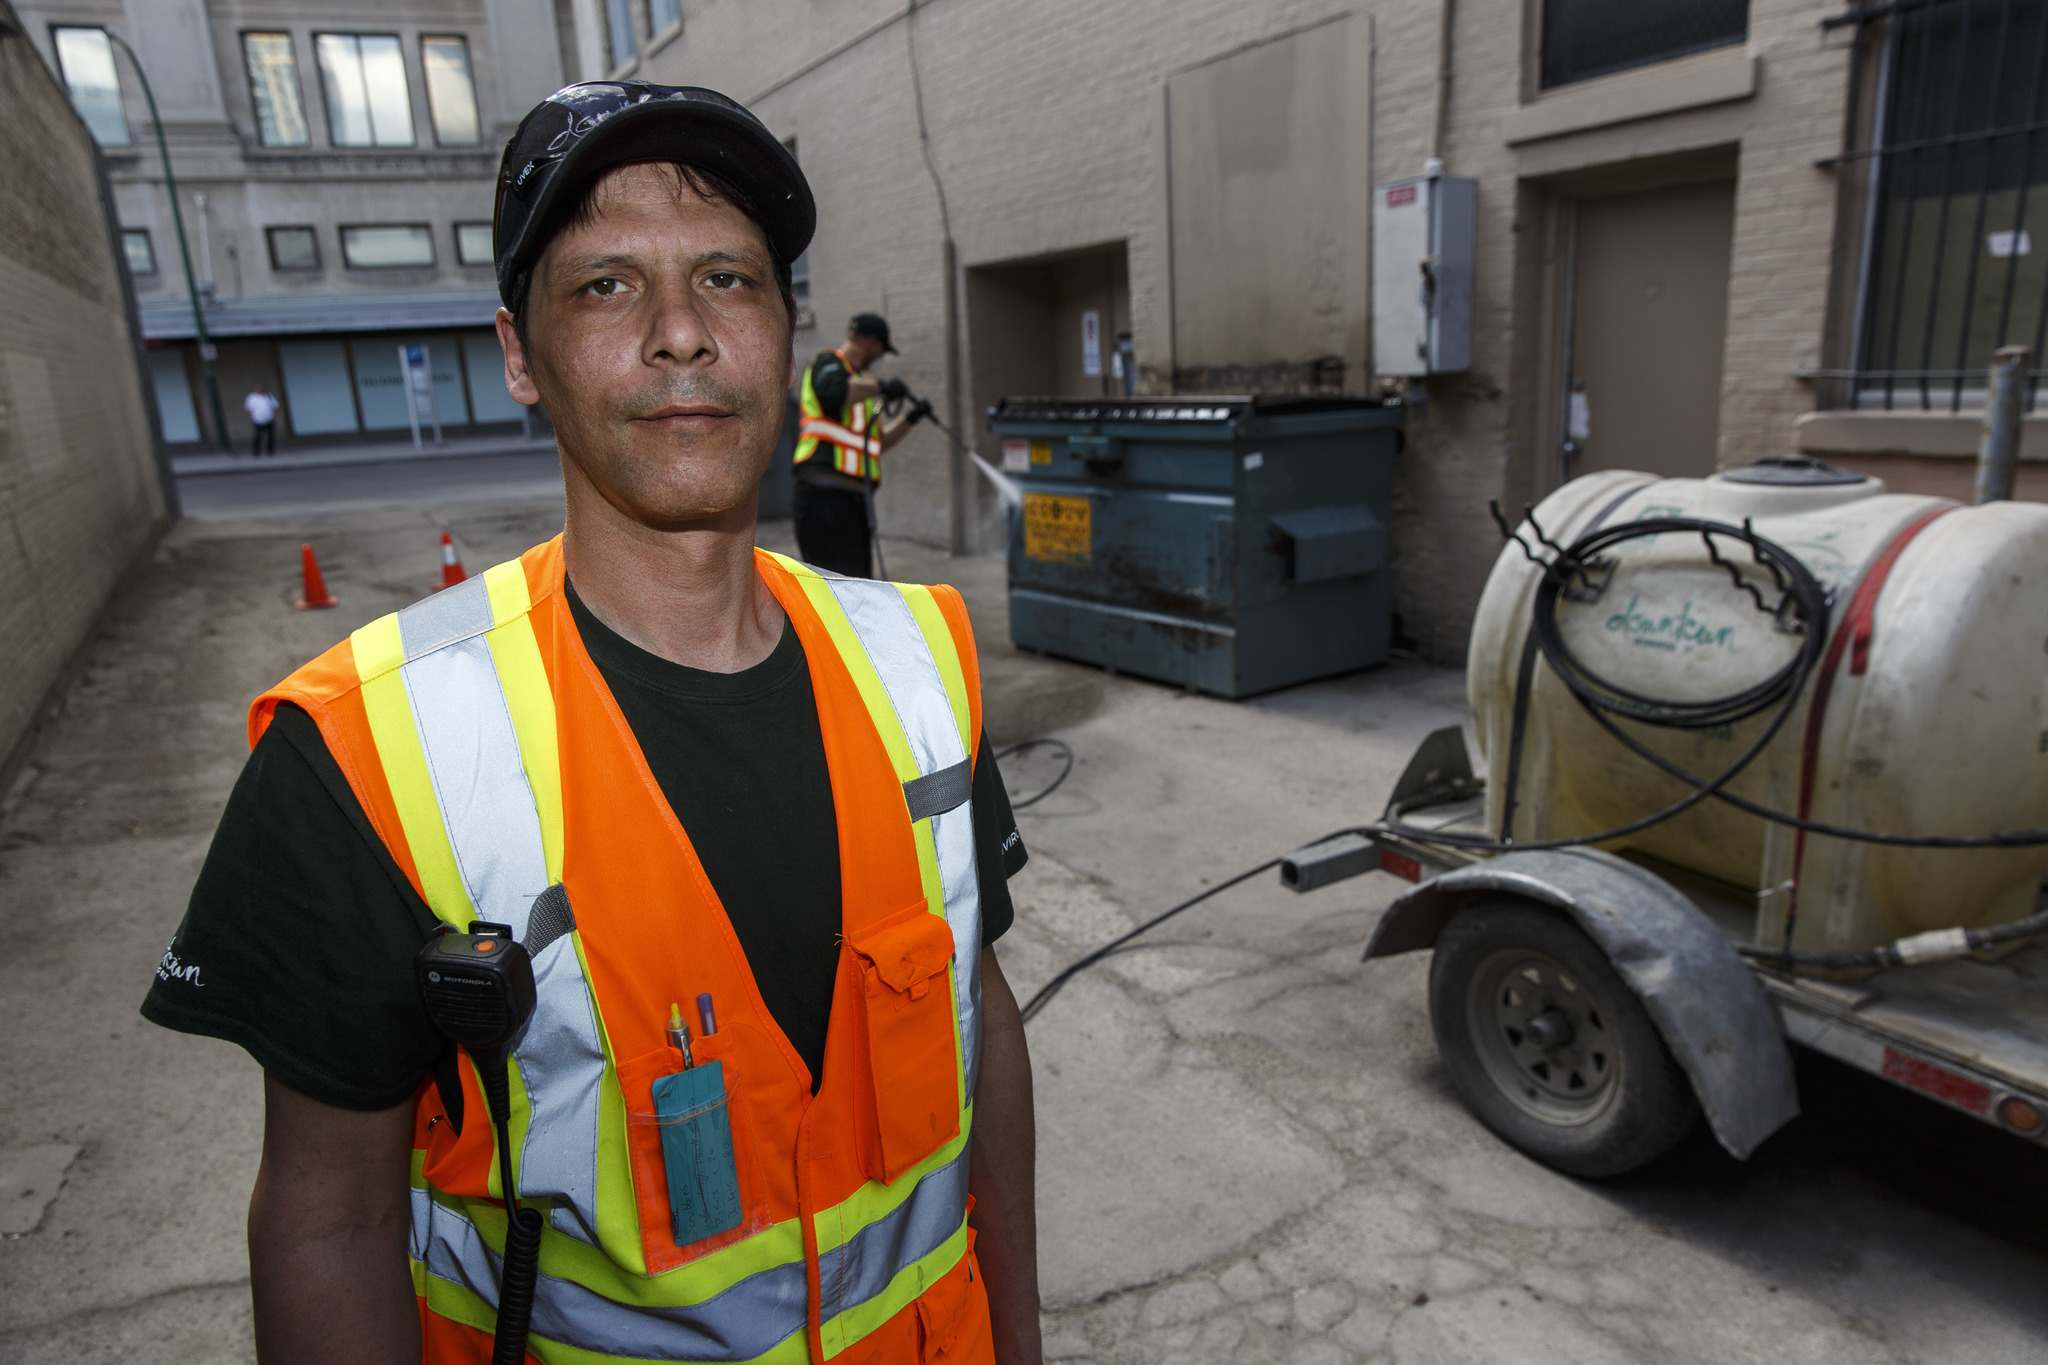 MIKE DEAL / WINNIPEG FREE PRESS</p><p>Supervisor Dennis Rondeau and his crew respond to about 10 clean-up calls daily.</p>